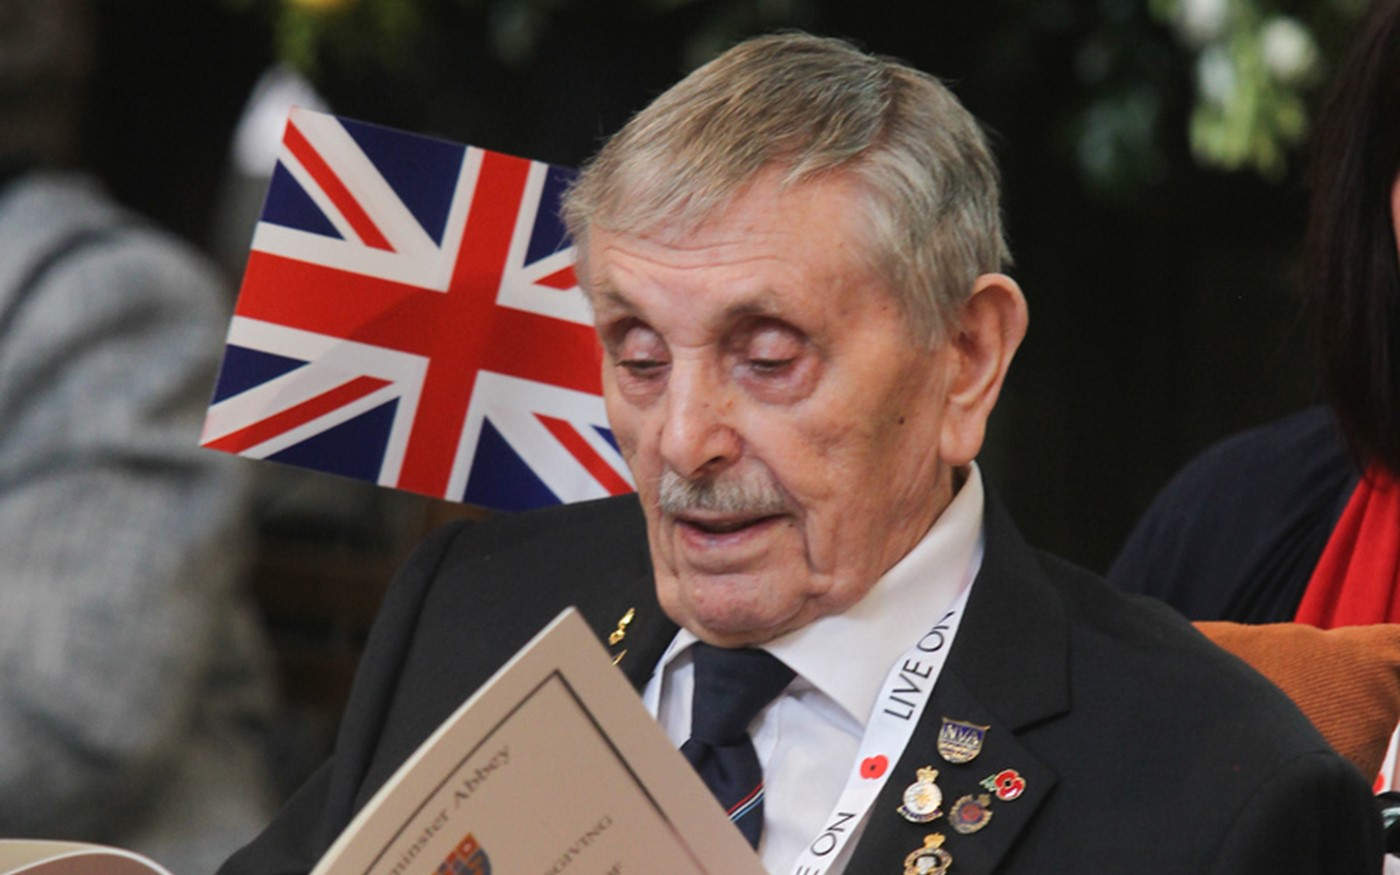 Veteran looks at the Order of Service